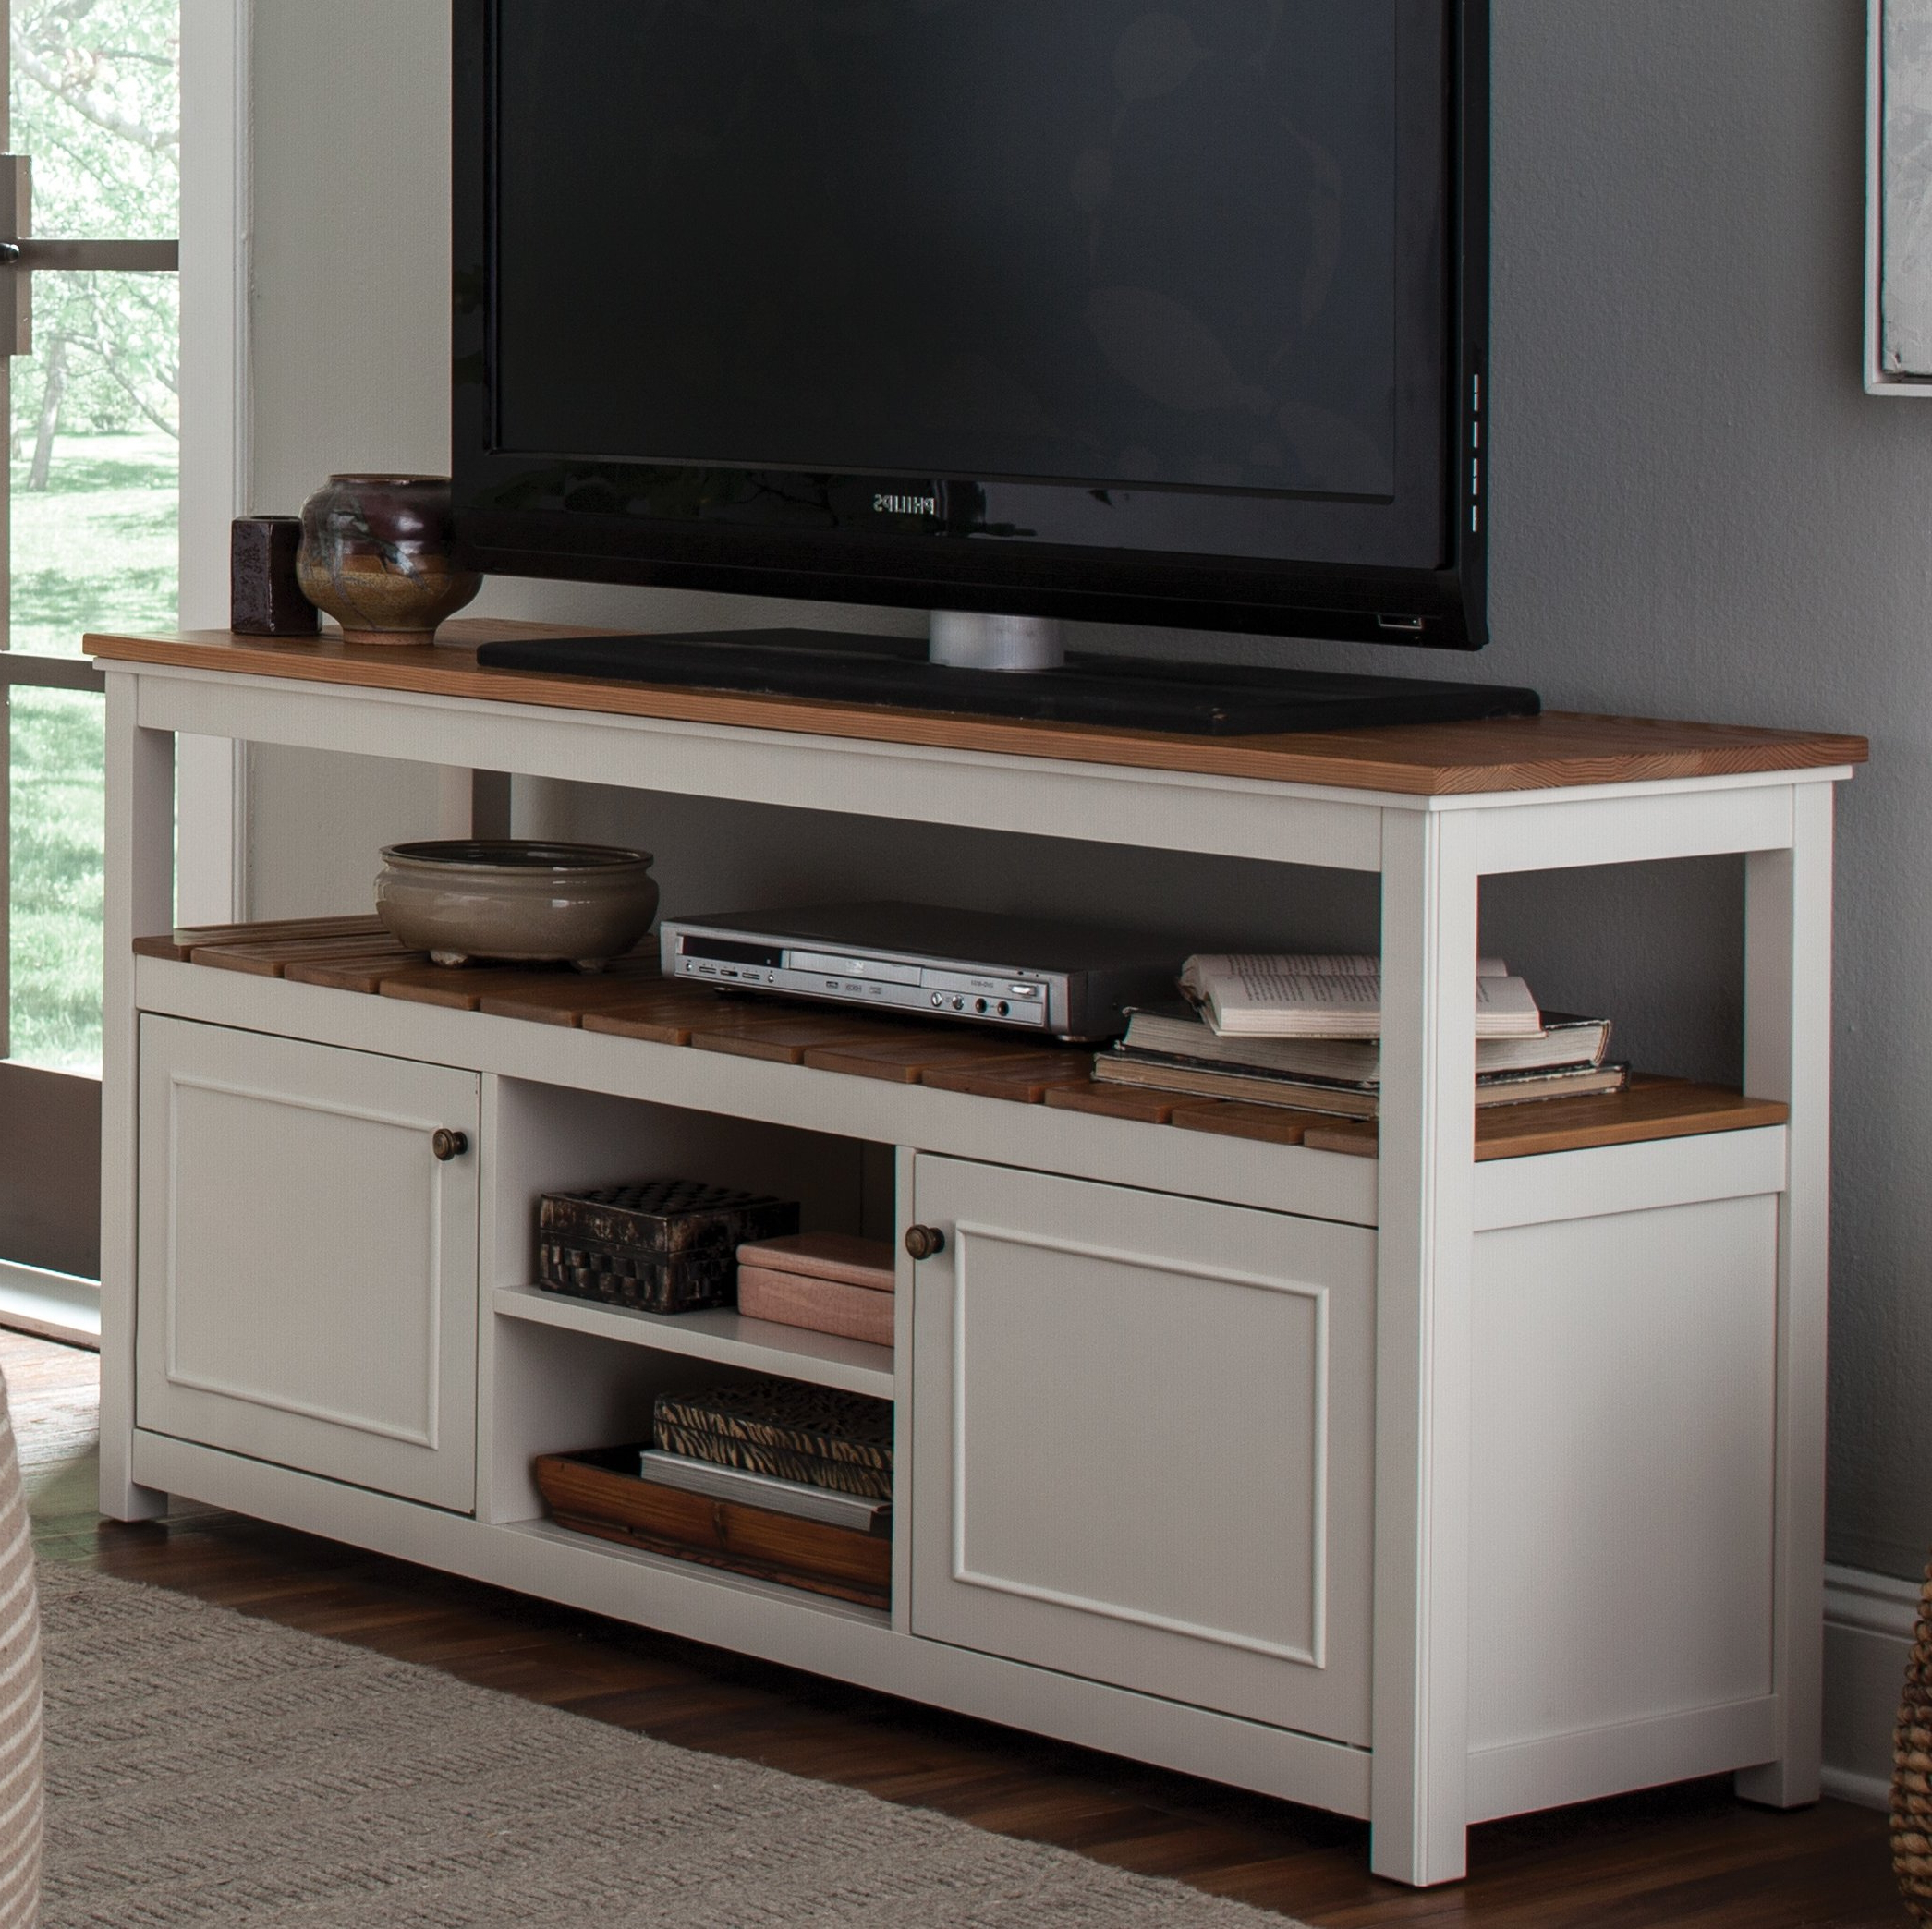 "Tv Stands | Joss & Main With Regard To Parmelee Tv Stands For Tvs Up To 65"" (View 19 of 20)"